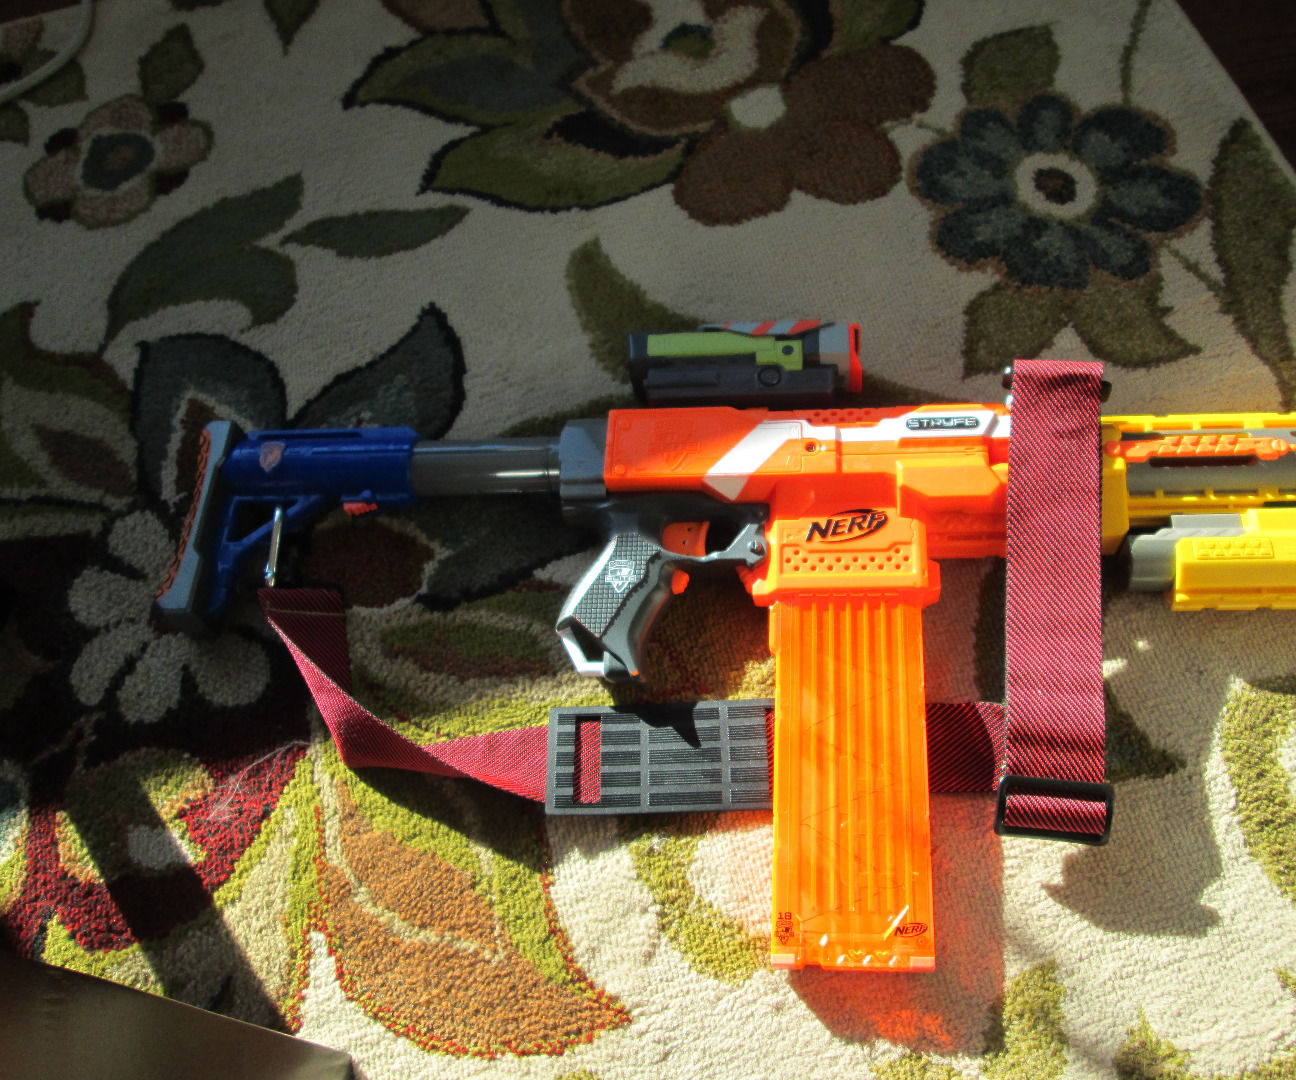 Nerf Assault Rifle - the NEC-18